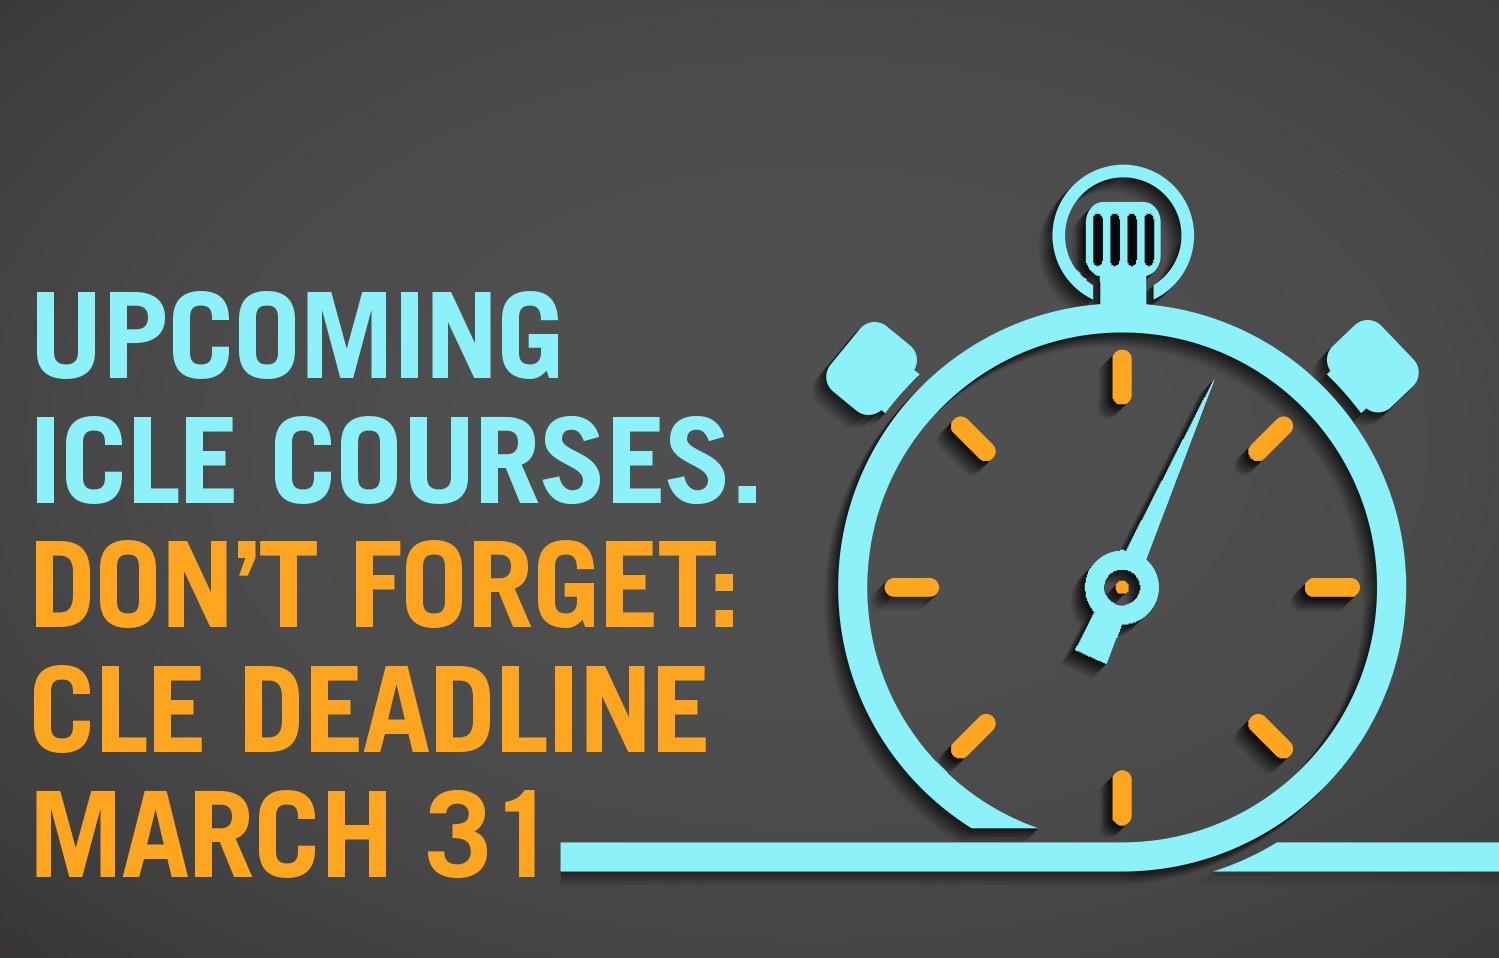 CLE Deadline: March 31. Upcoming ICLE Courses.